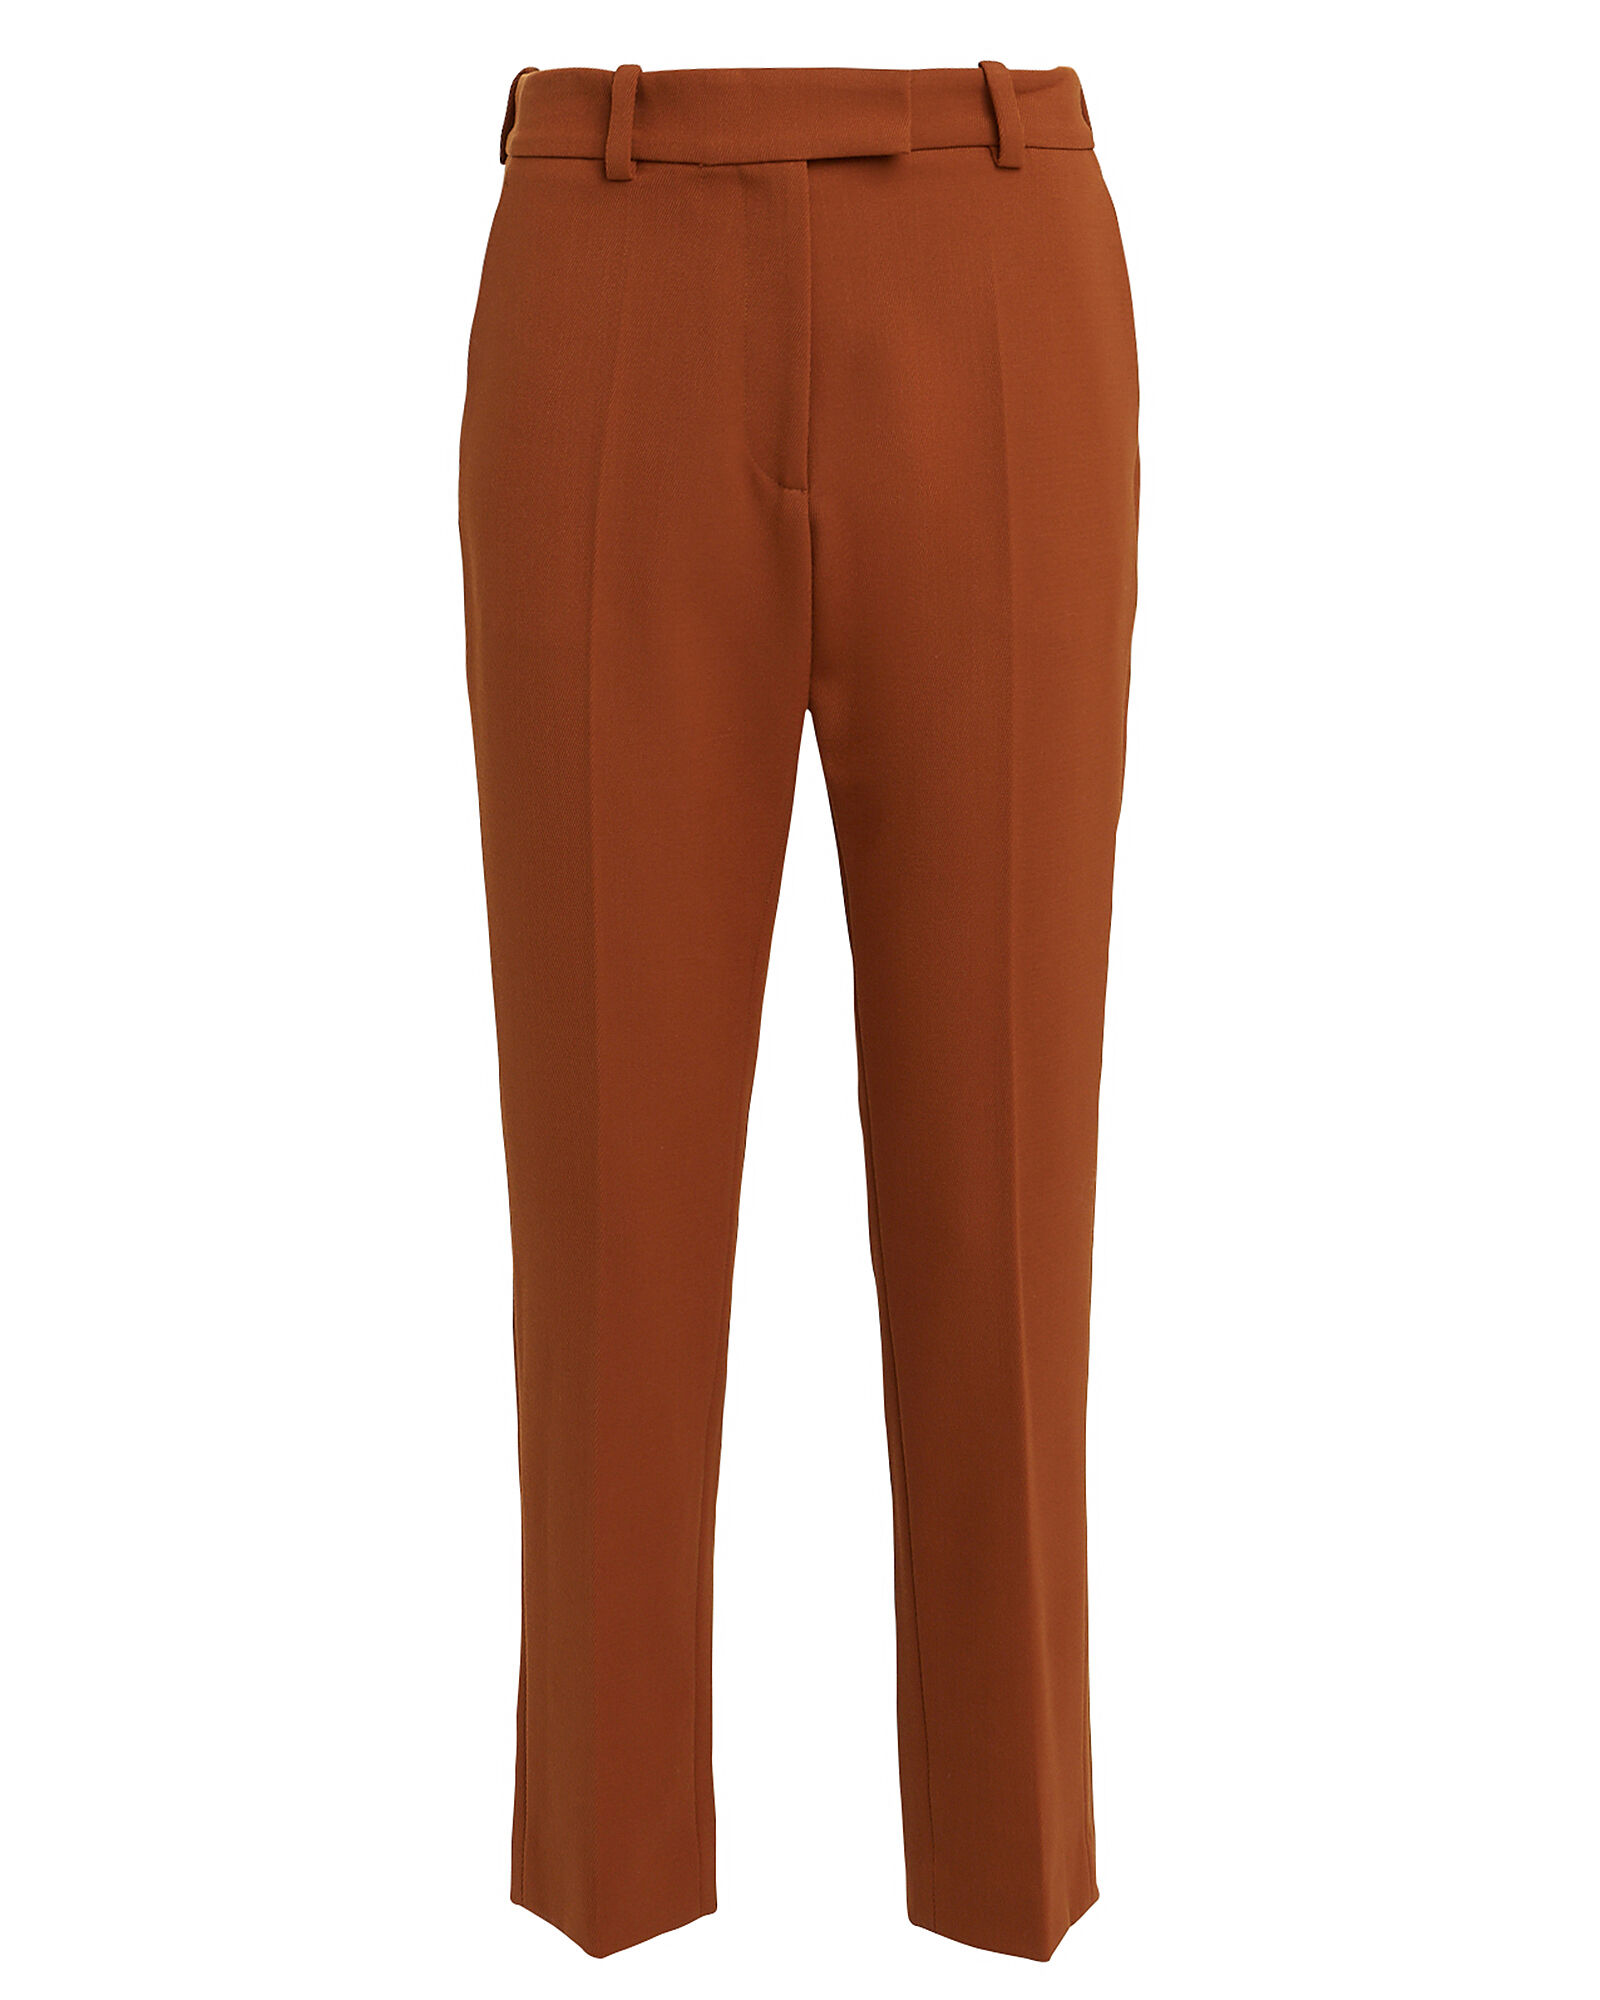 Oscar Drill Wool Trousers, BEIGE, hi-res